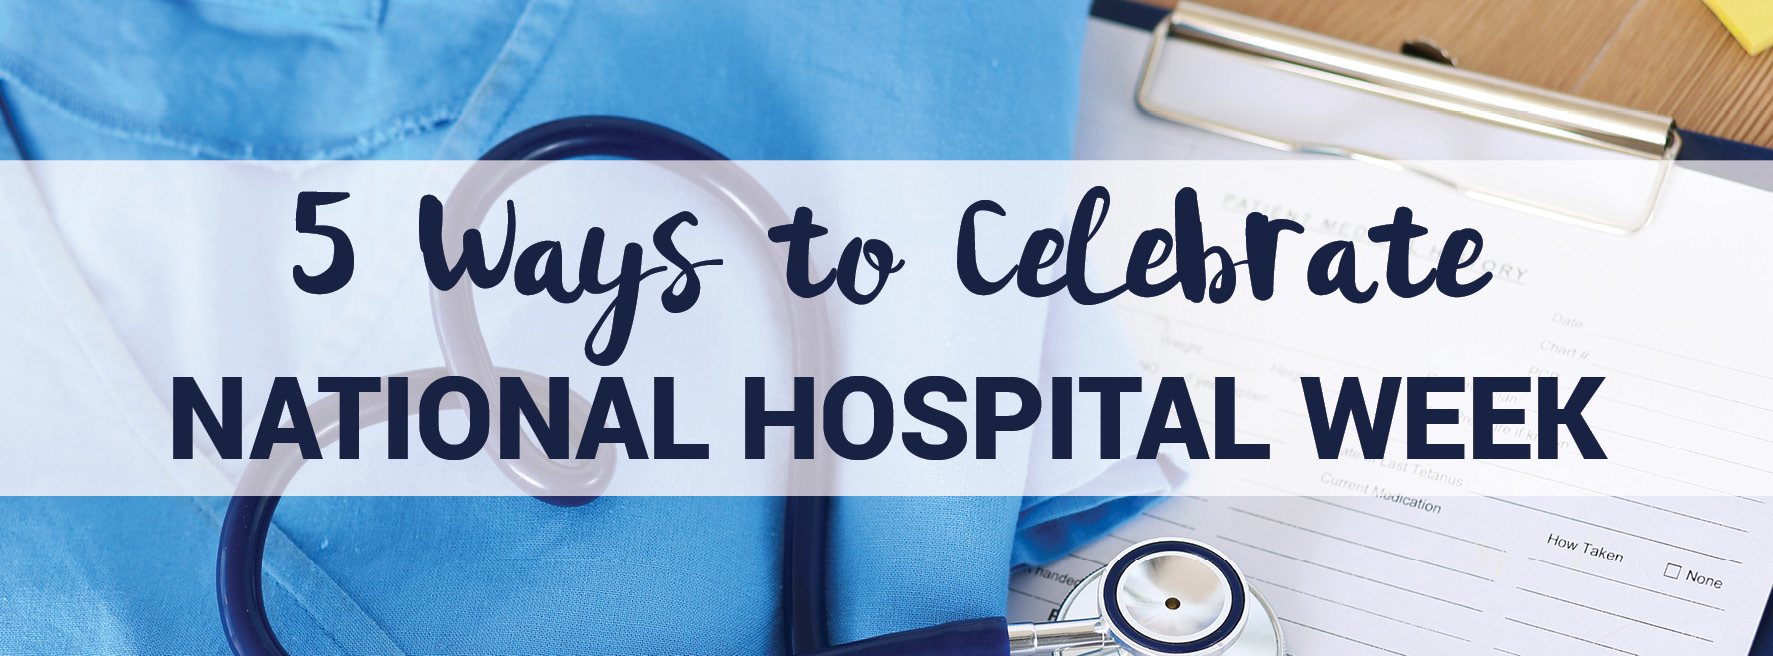 Five Ways to Celebrate National Hospital Week